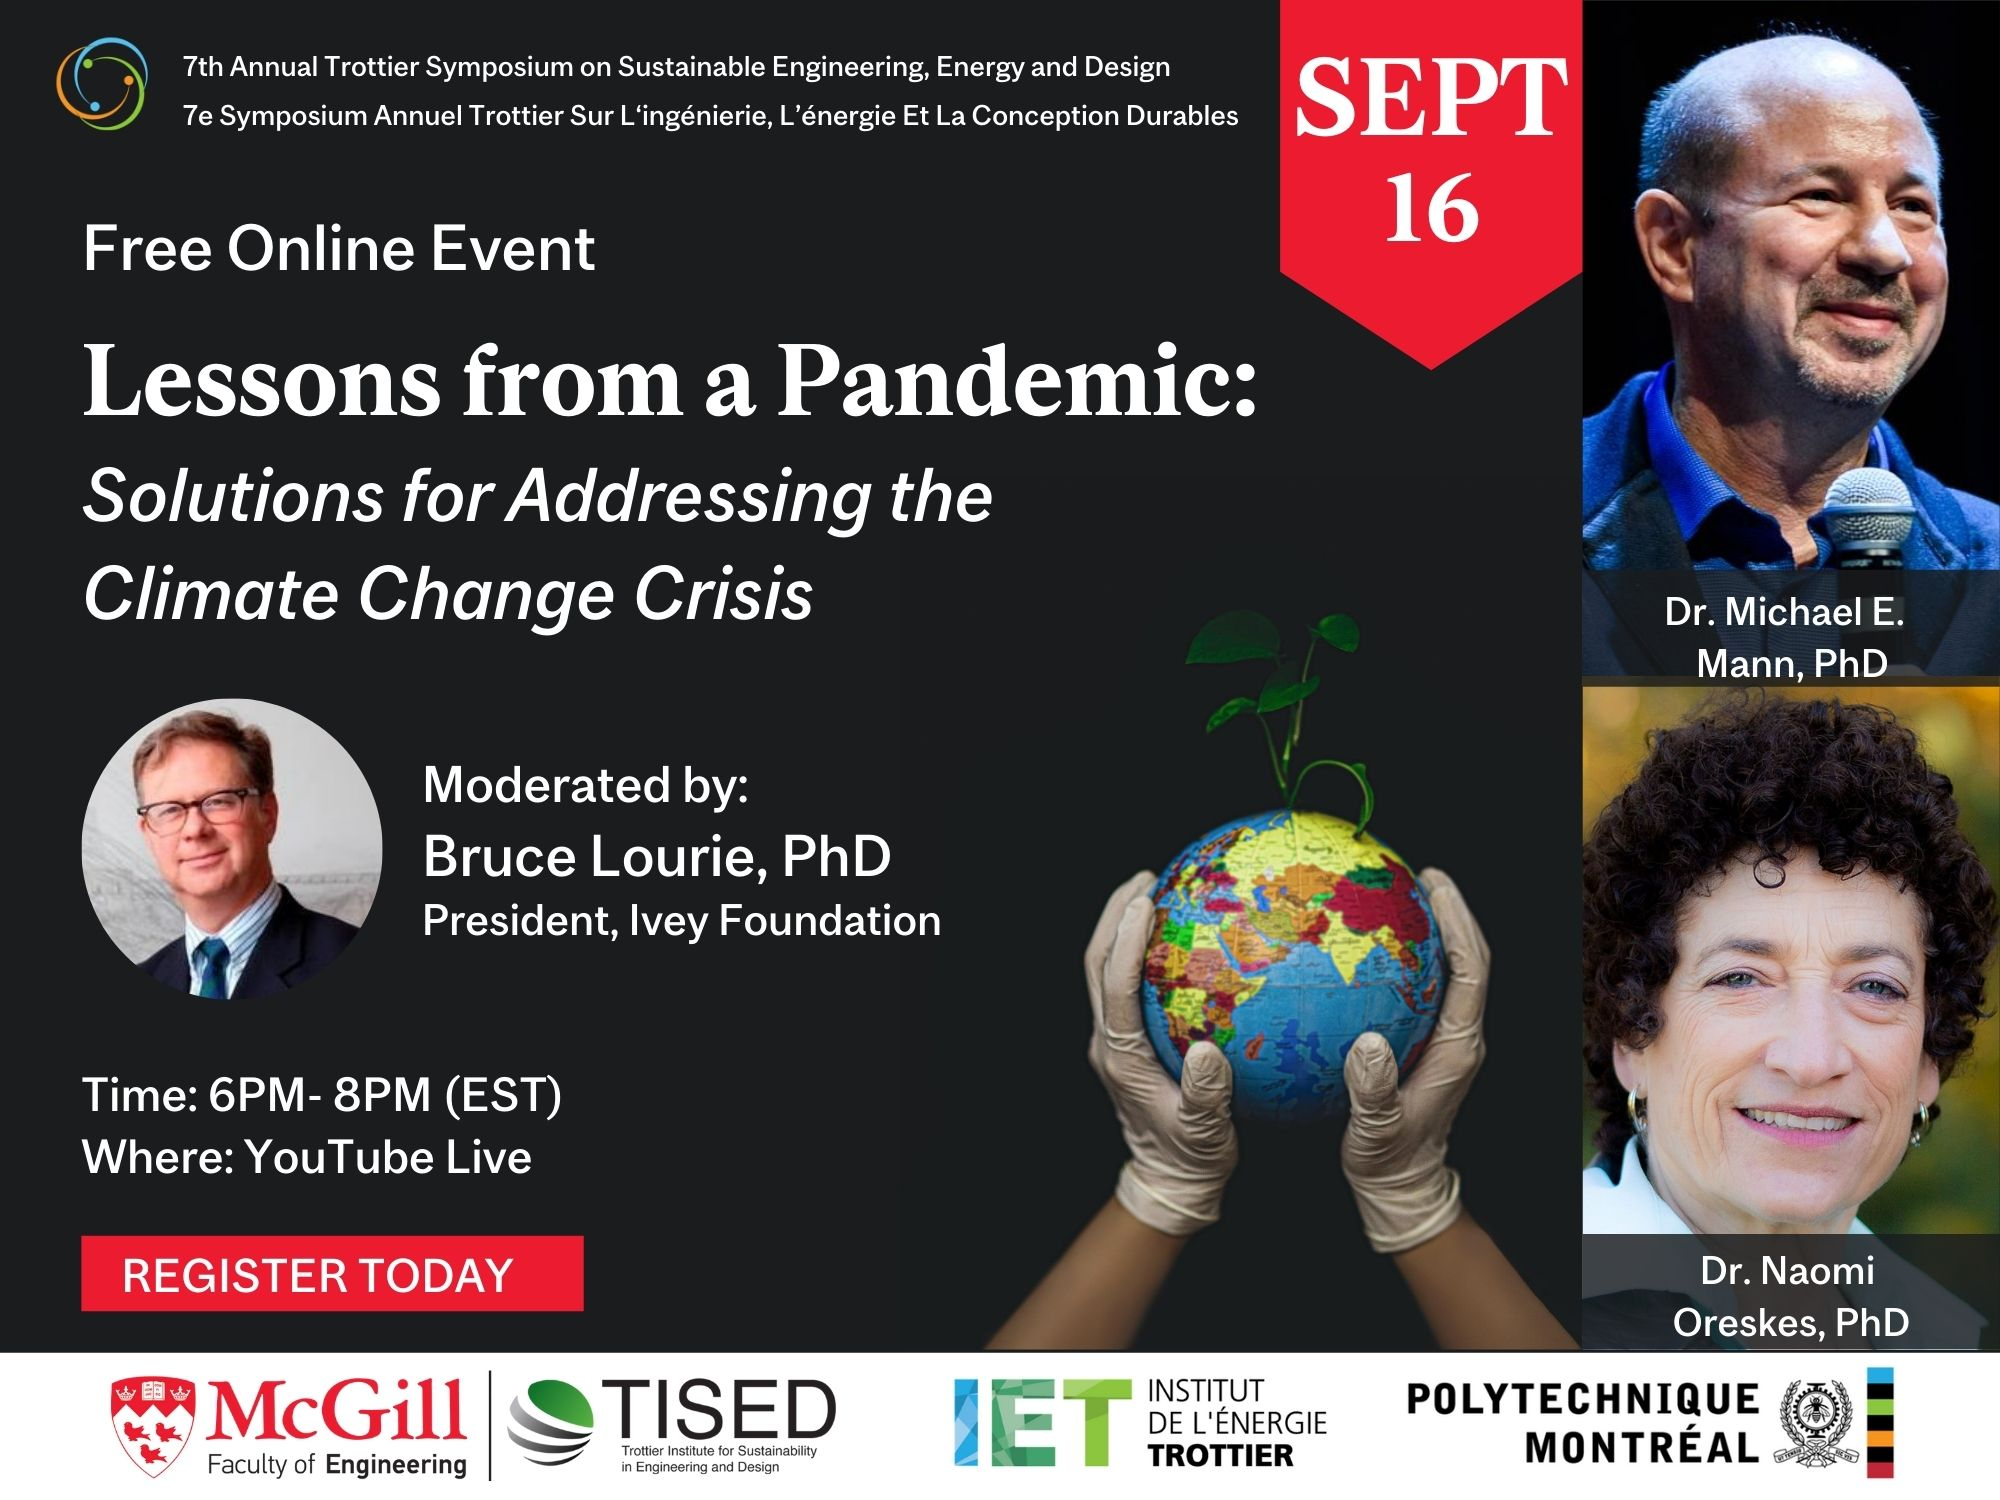 Lessons from a Pandemic: Solutions for Addressing the Climate Change Crisis